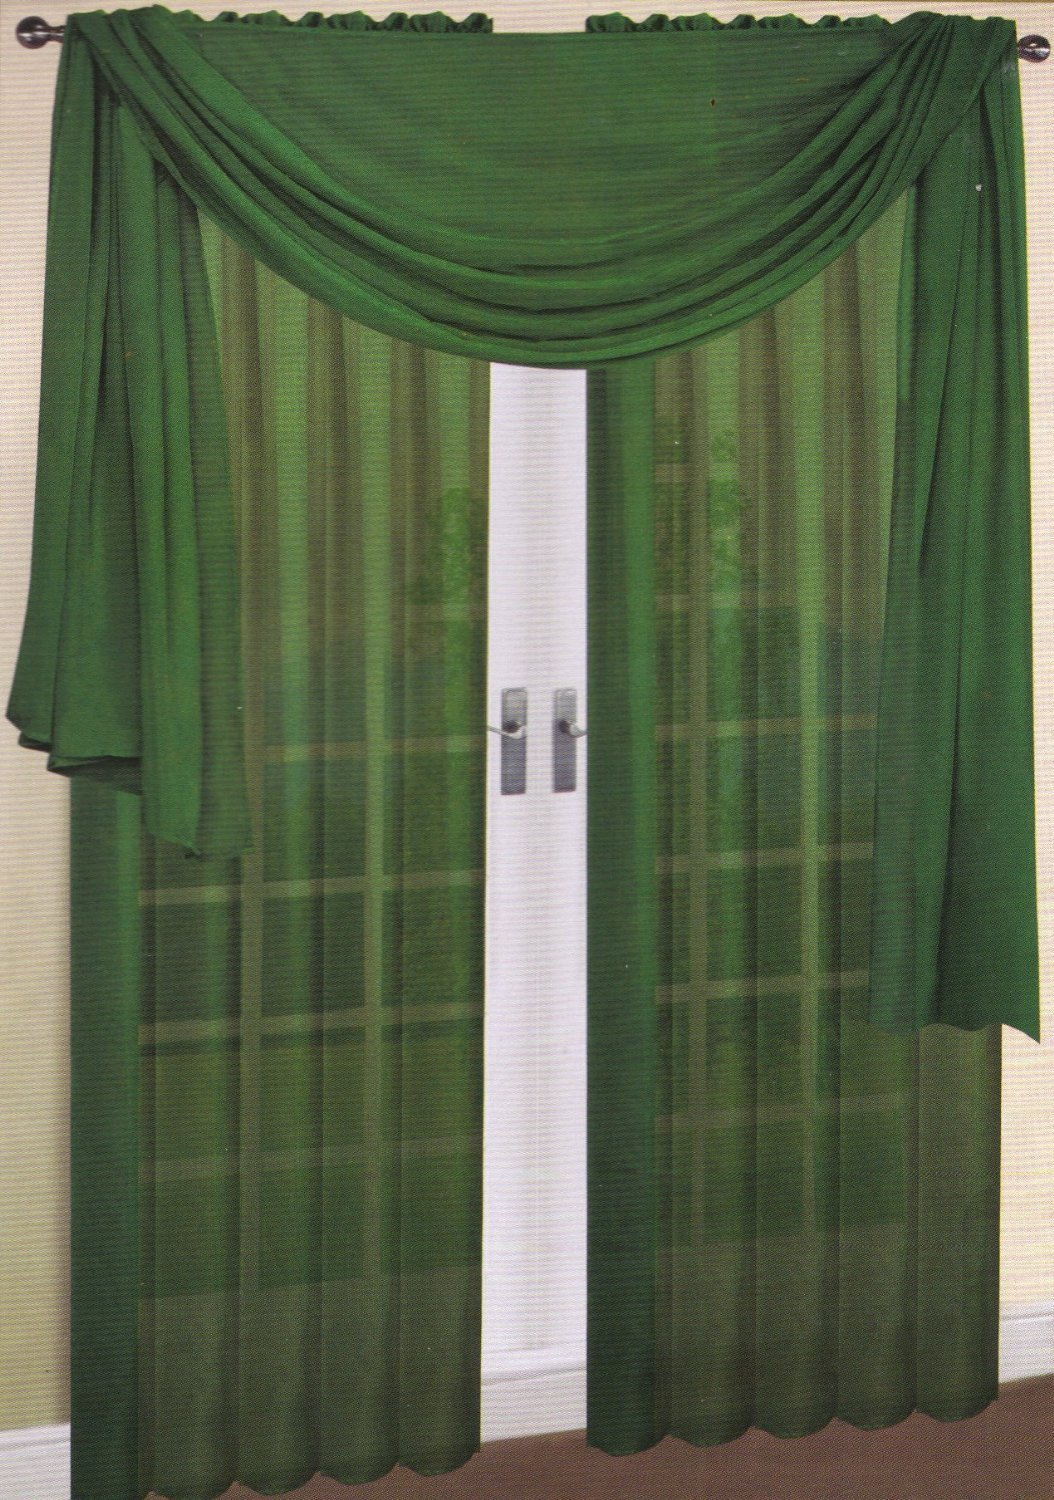 LuxuryDiscounts 2 Piece Solid Hunter Green Elegant Sheer Curtains Fully Stitched Panels Window Treatment Drape